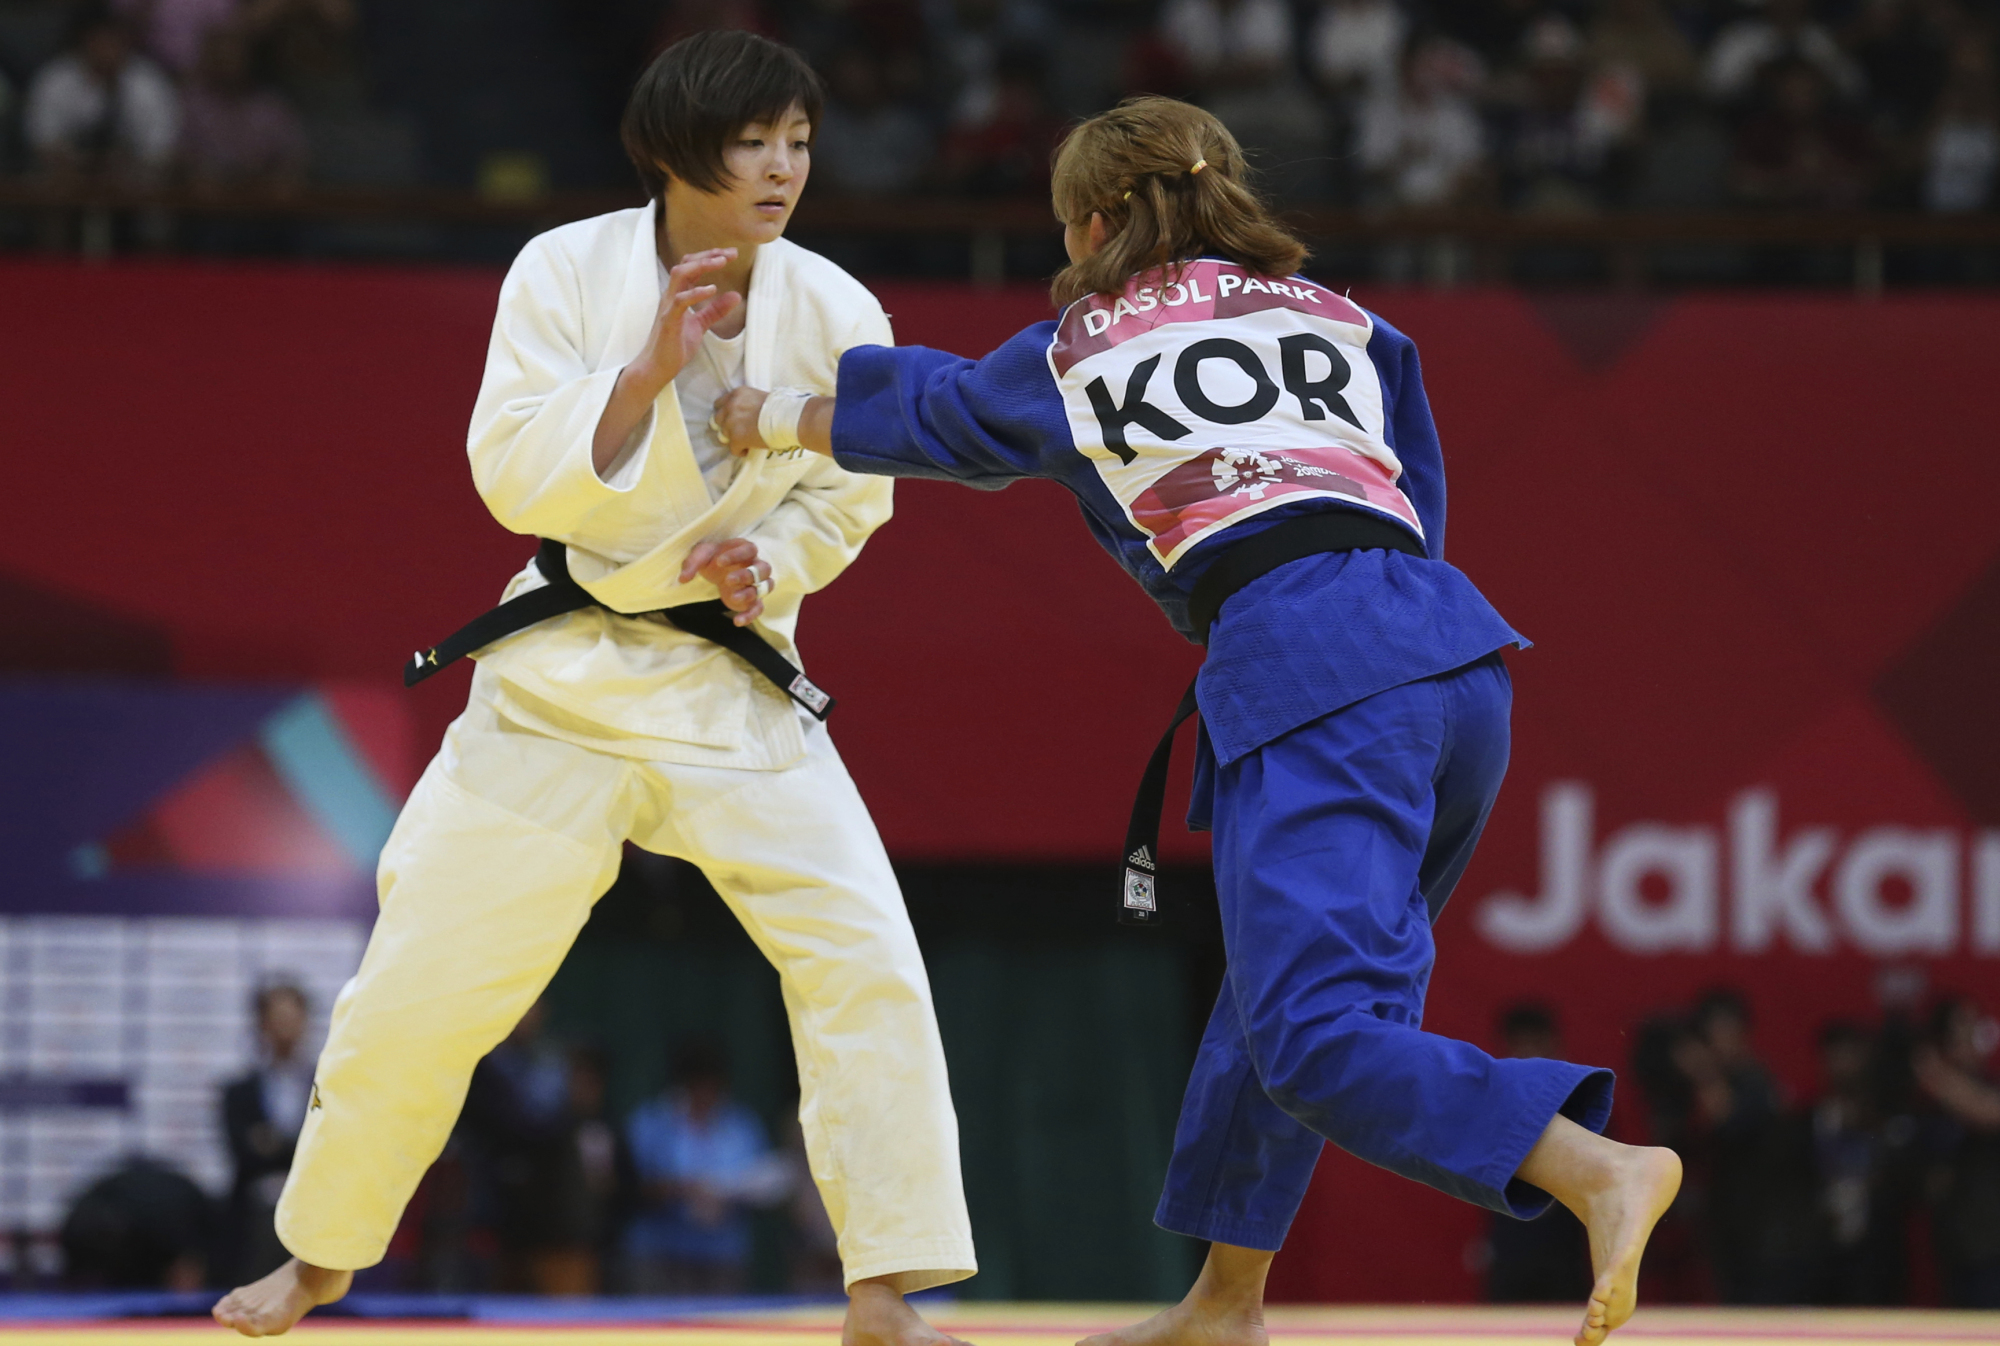 Natsumi Tsunoda competes against Park Da-sol of South Korea during the women's 52-kg judo final at the Asian Games in Jakarta on Wednesday. | AP